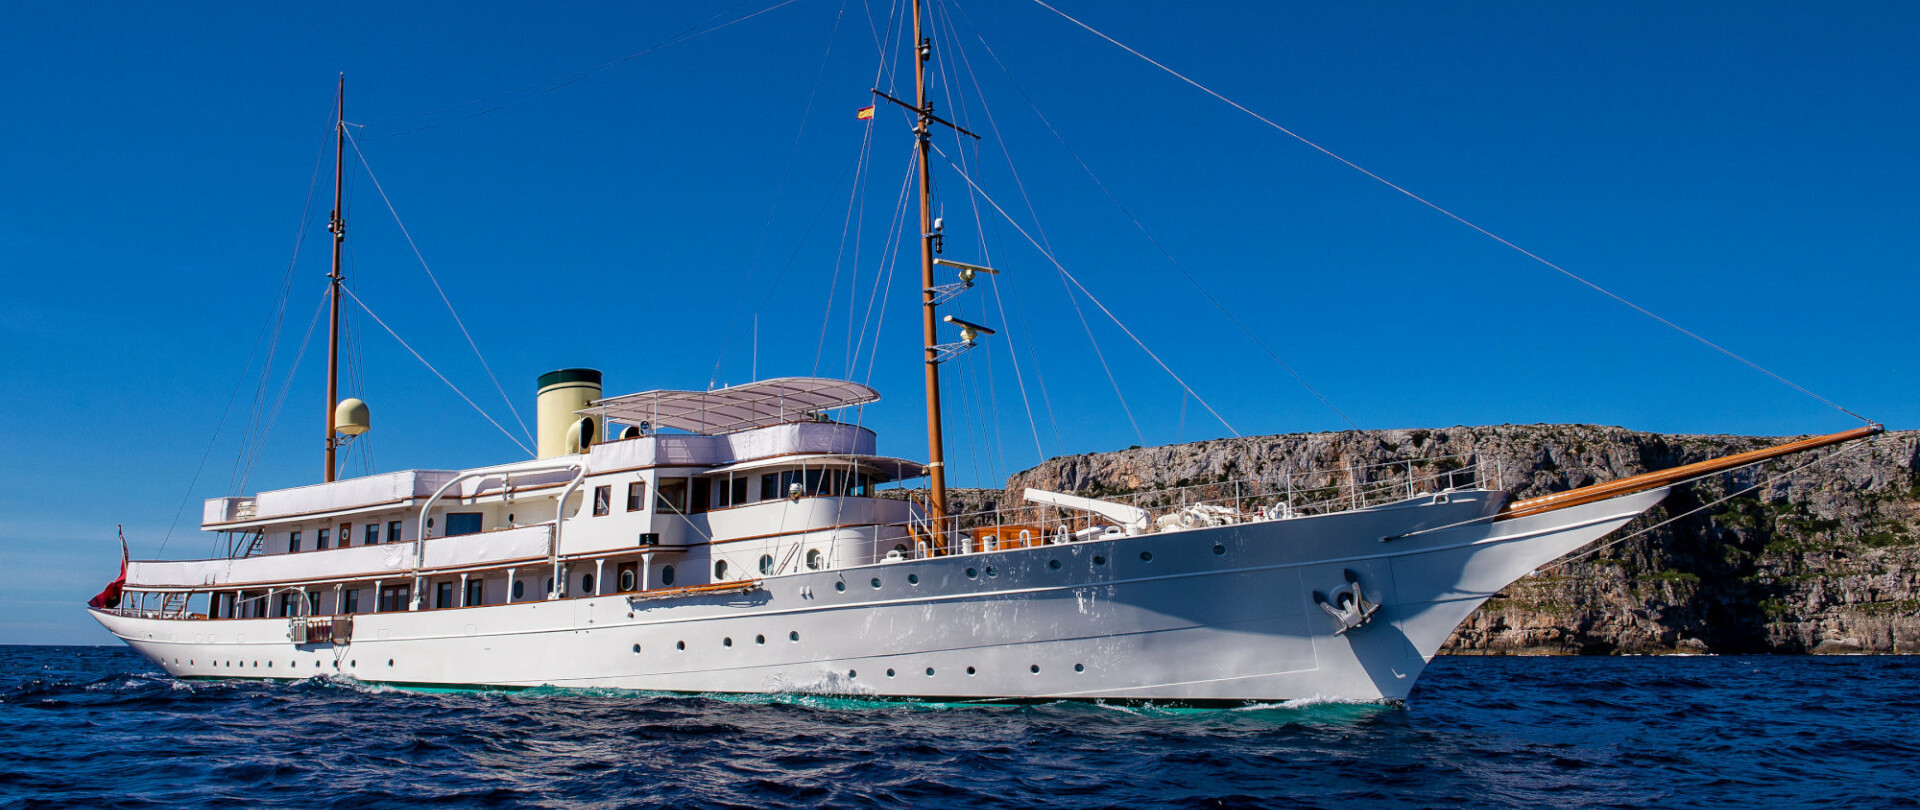 Glide into Greece this summer on a Haida 1929 charter photo 1